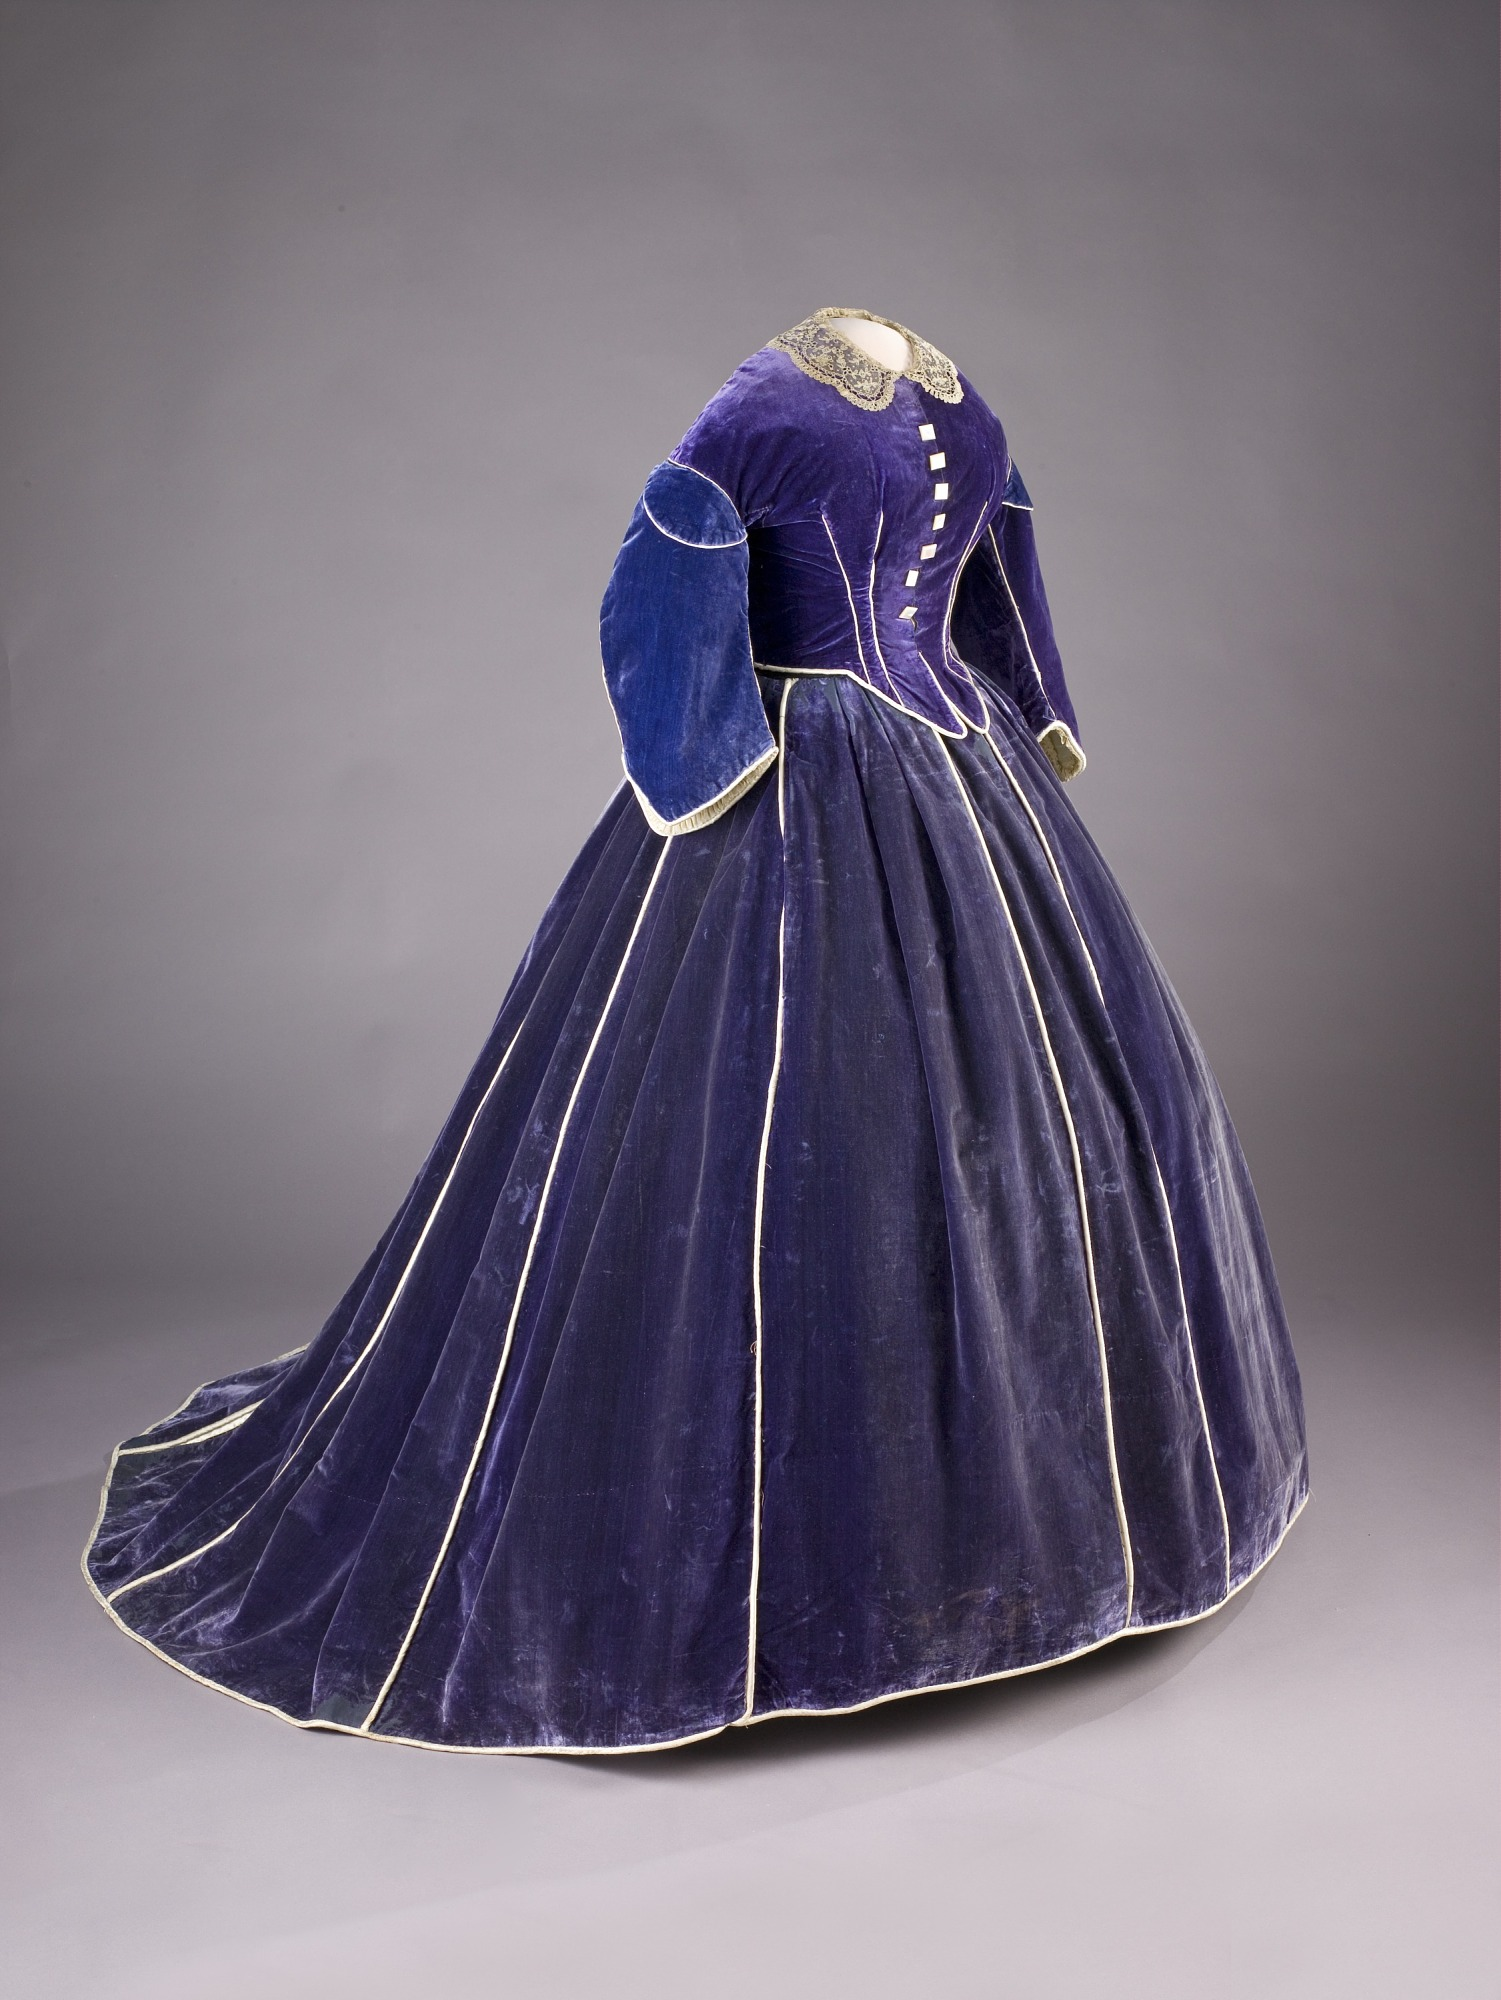 Dress worn by Mary Lincoln. Skirt with daytime bodice. PL*033280.A and PL*033280E.